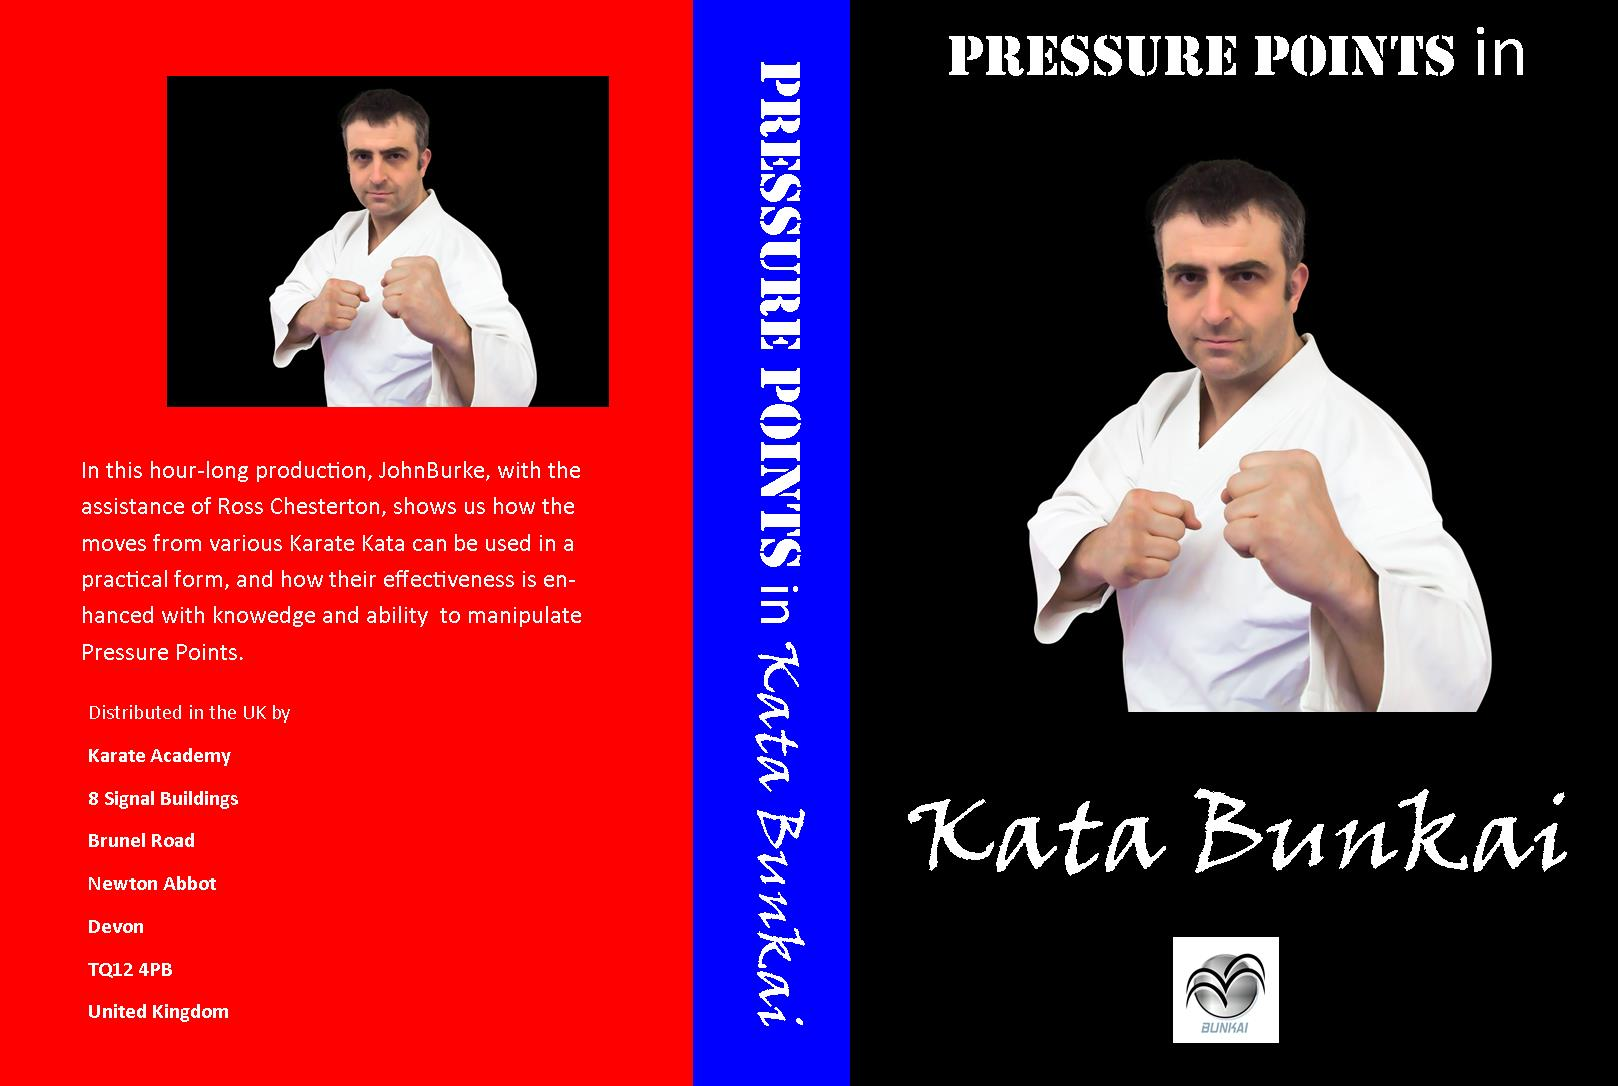 Pressure Point Bunkai video